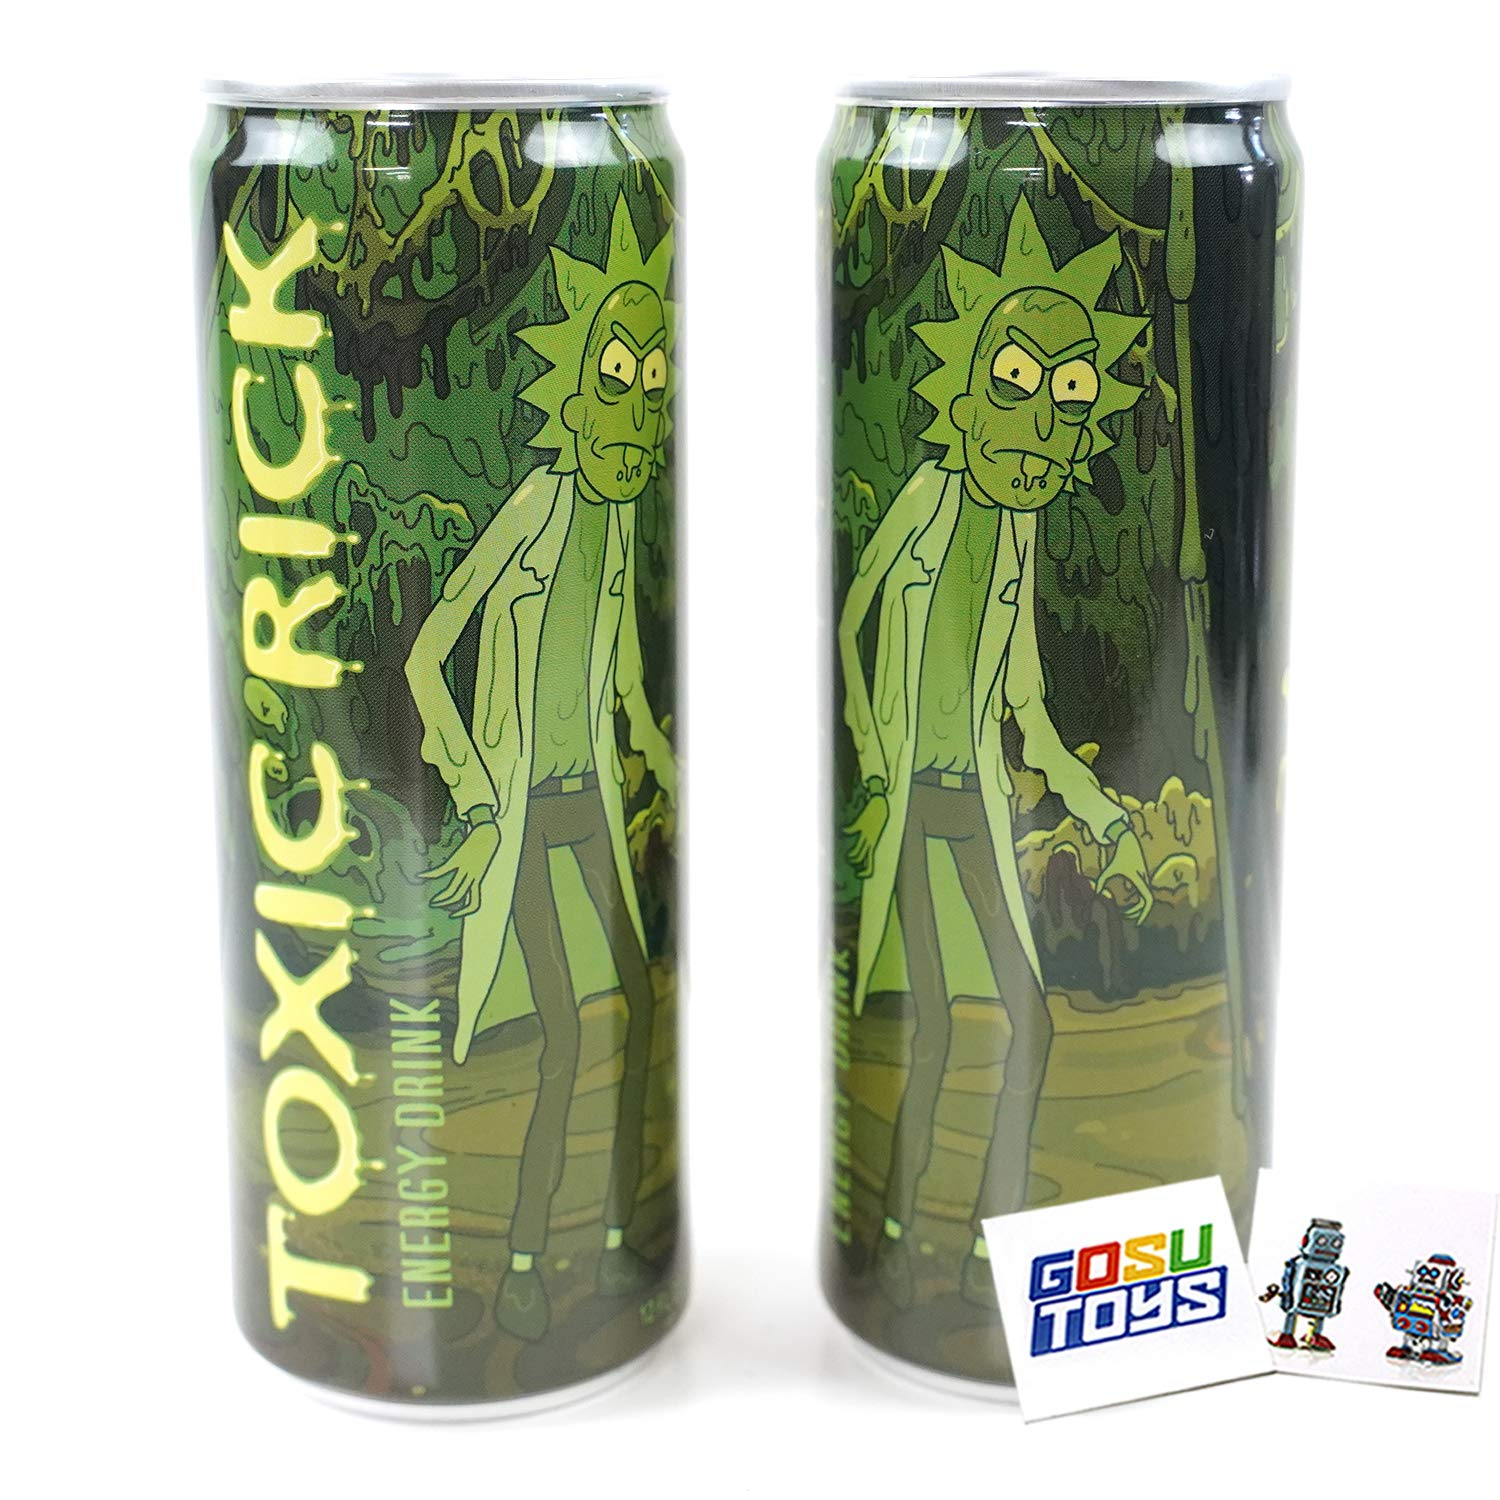 Rick and Morty energy drink